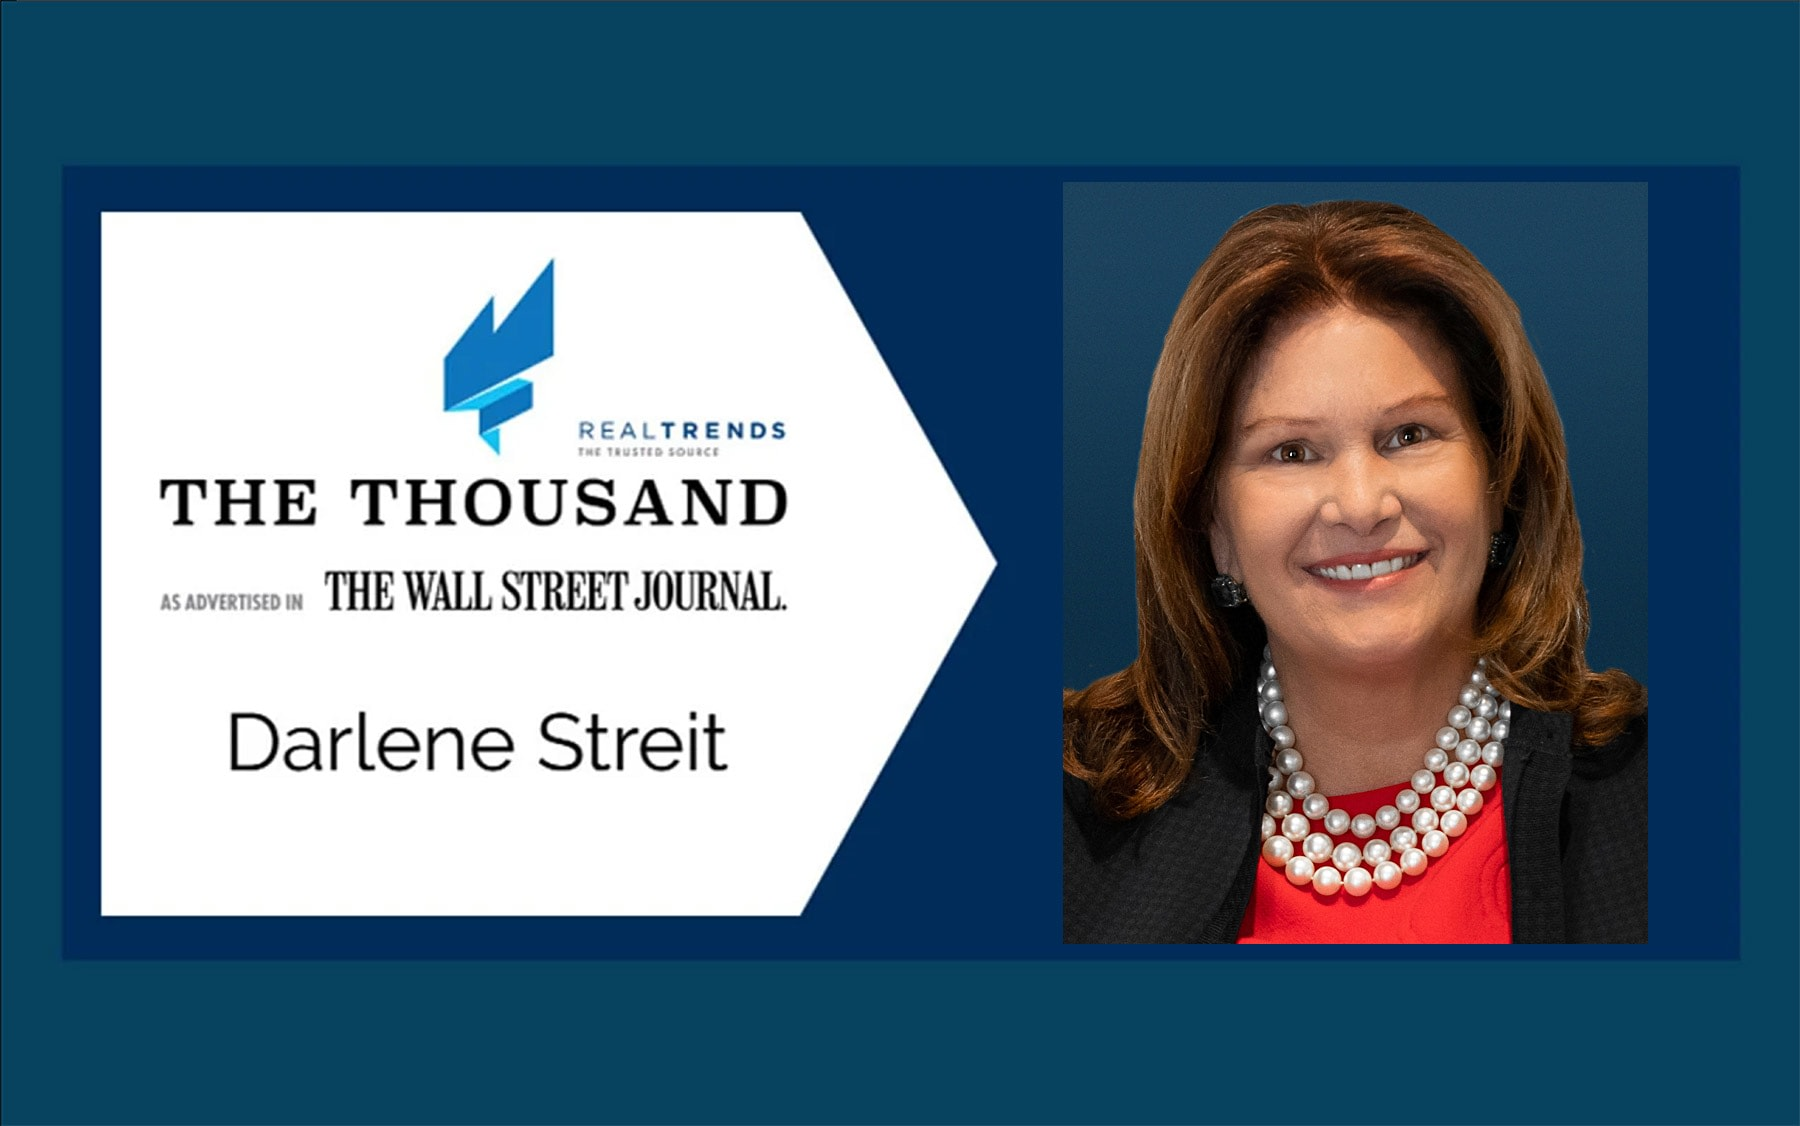 Darlene Streit: A National Leader Among Real Estate Agents